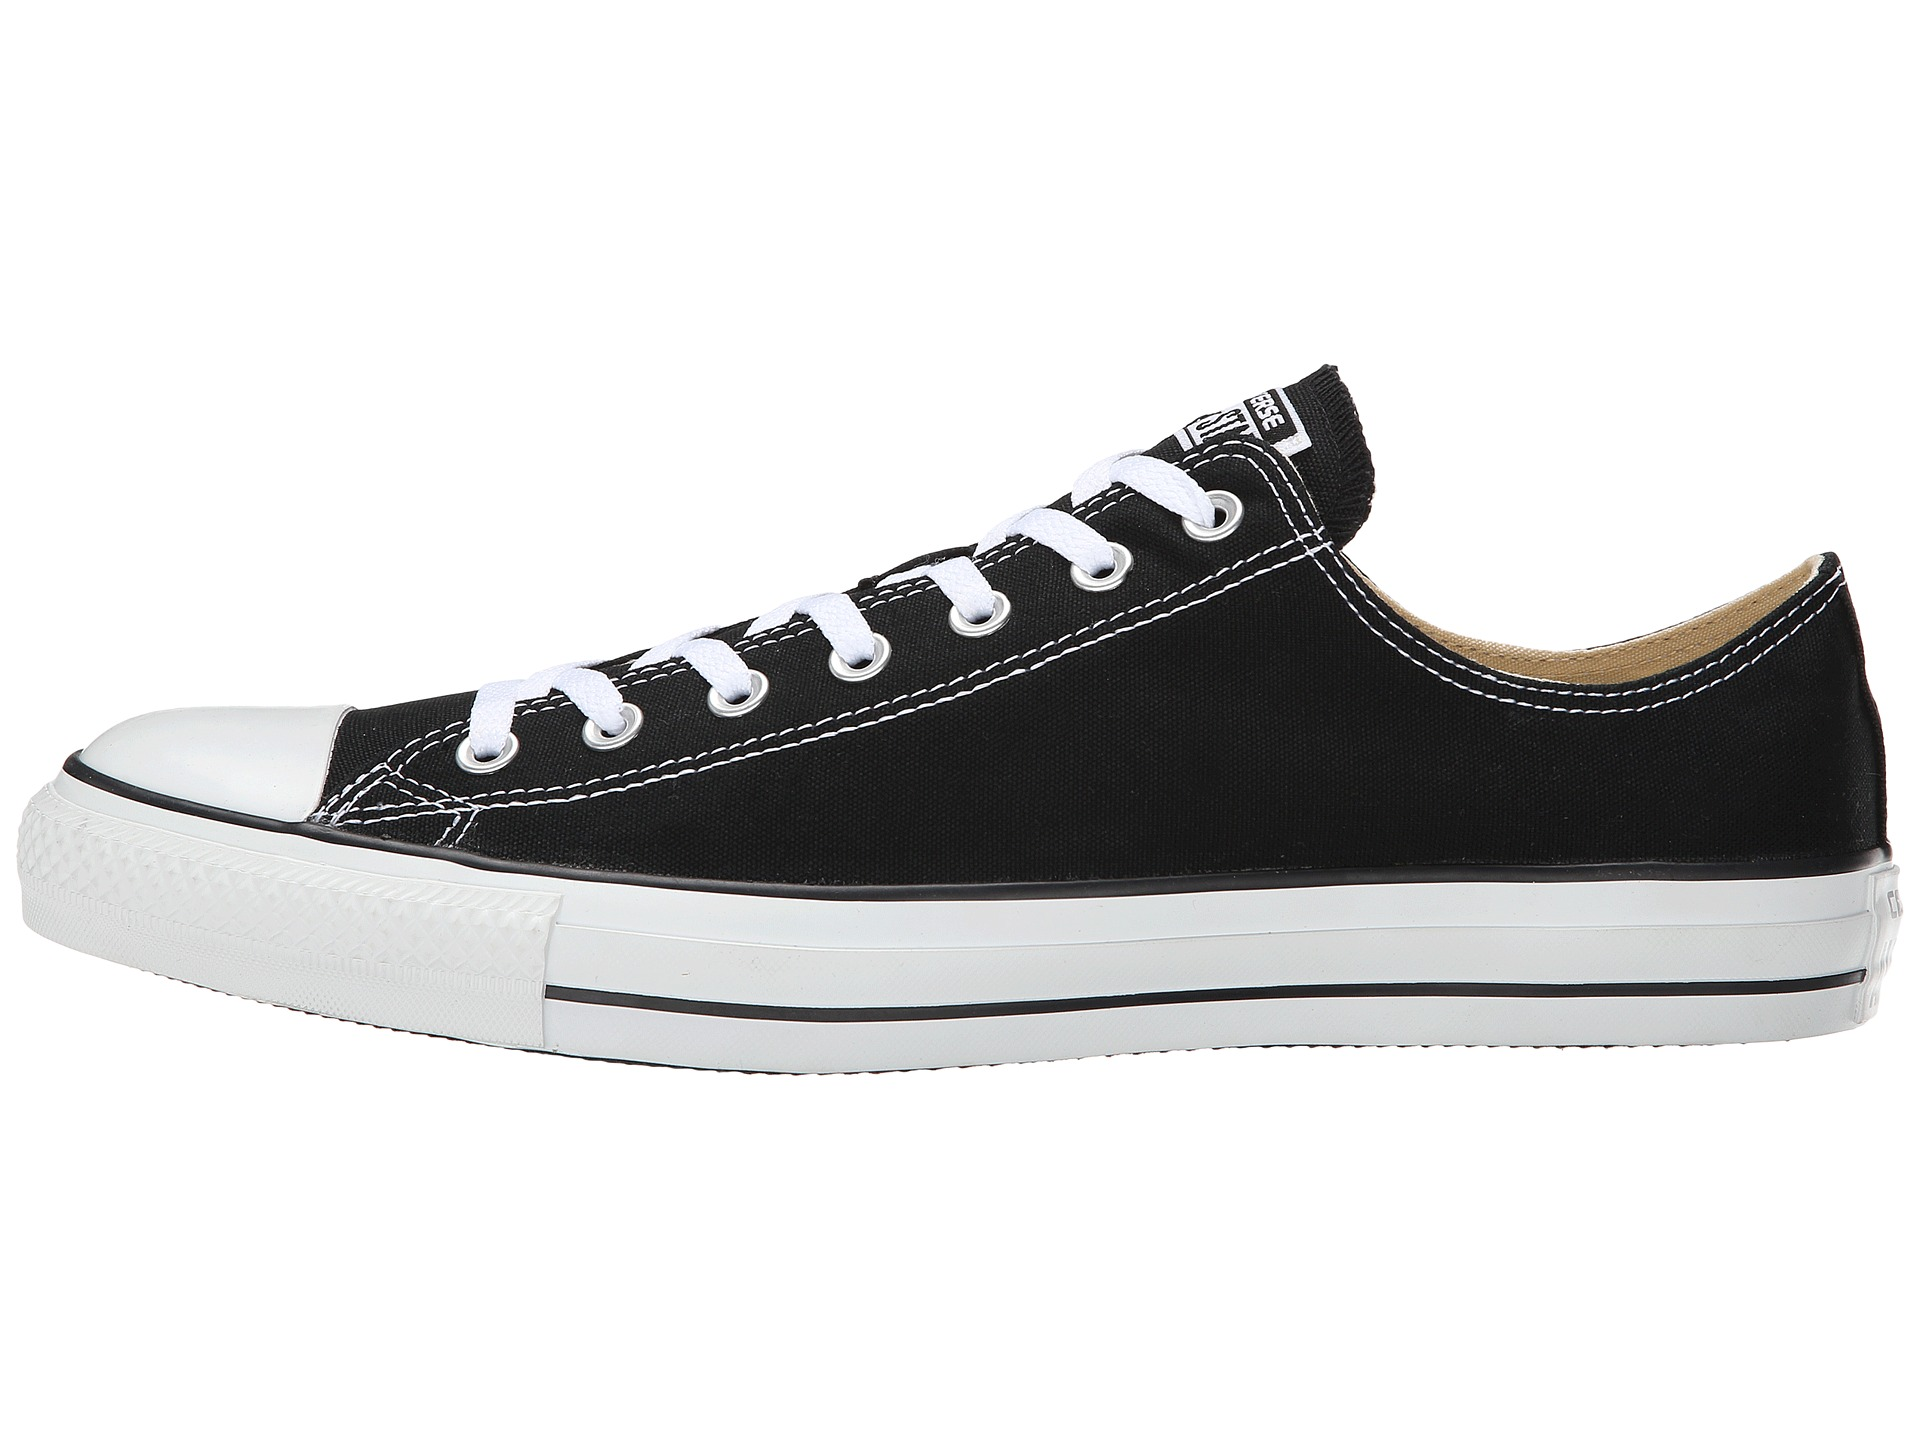 converse low tops best shoes designed by converse. Black Bedroom Furniture Sets. Home Design Ideas